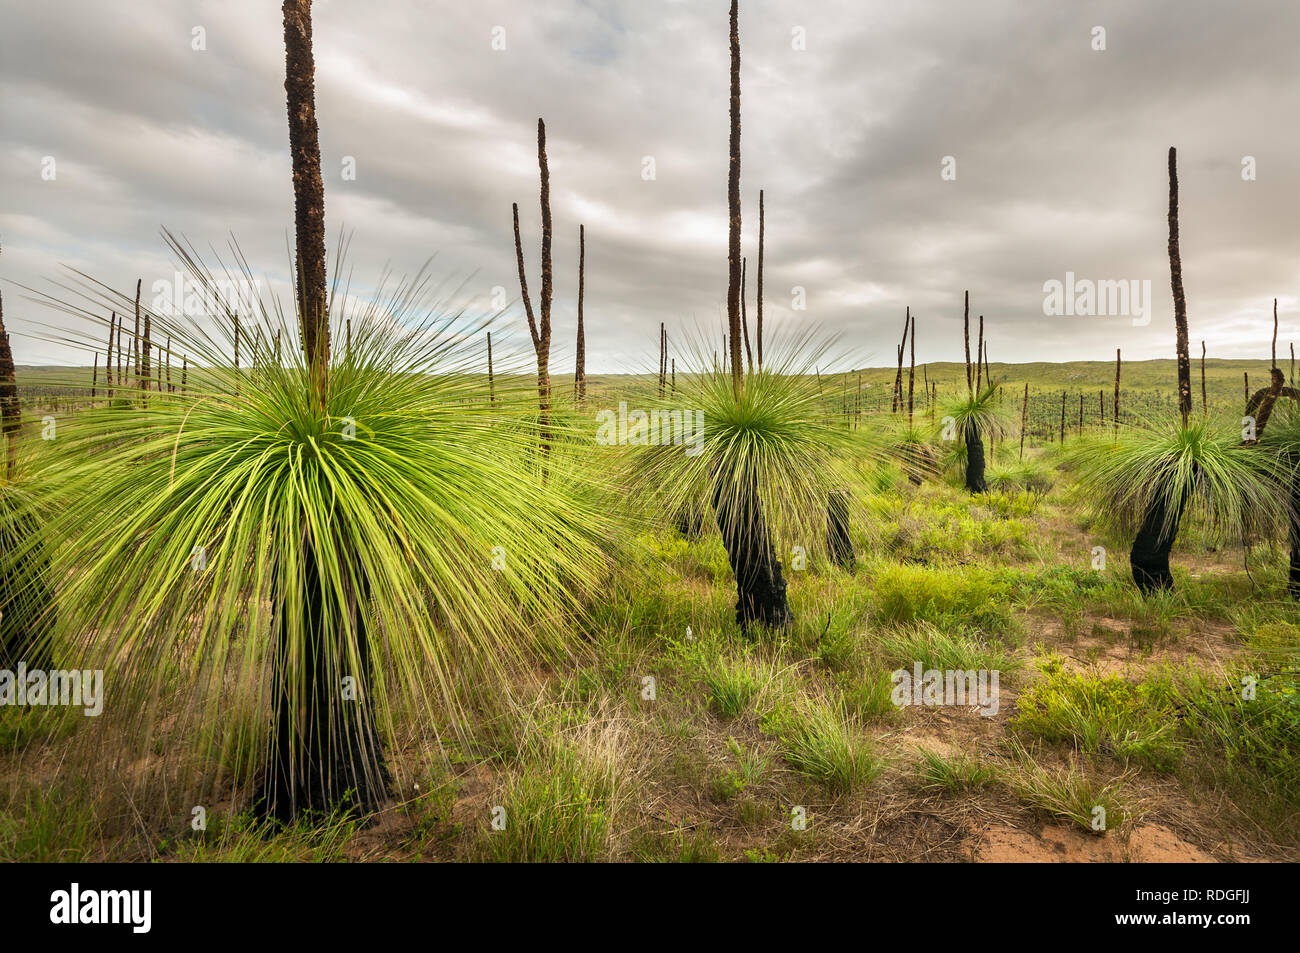 Heathland with a fascinating vegetation of Grass Trees. - Stock Image